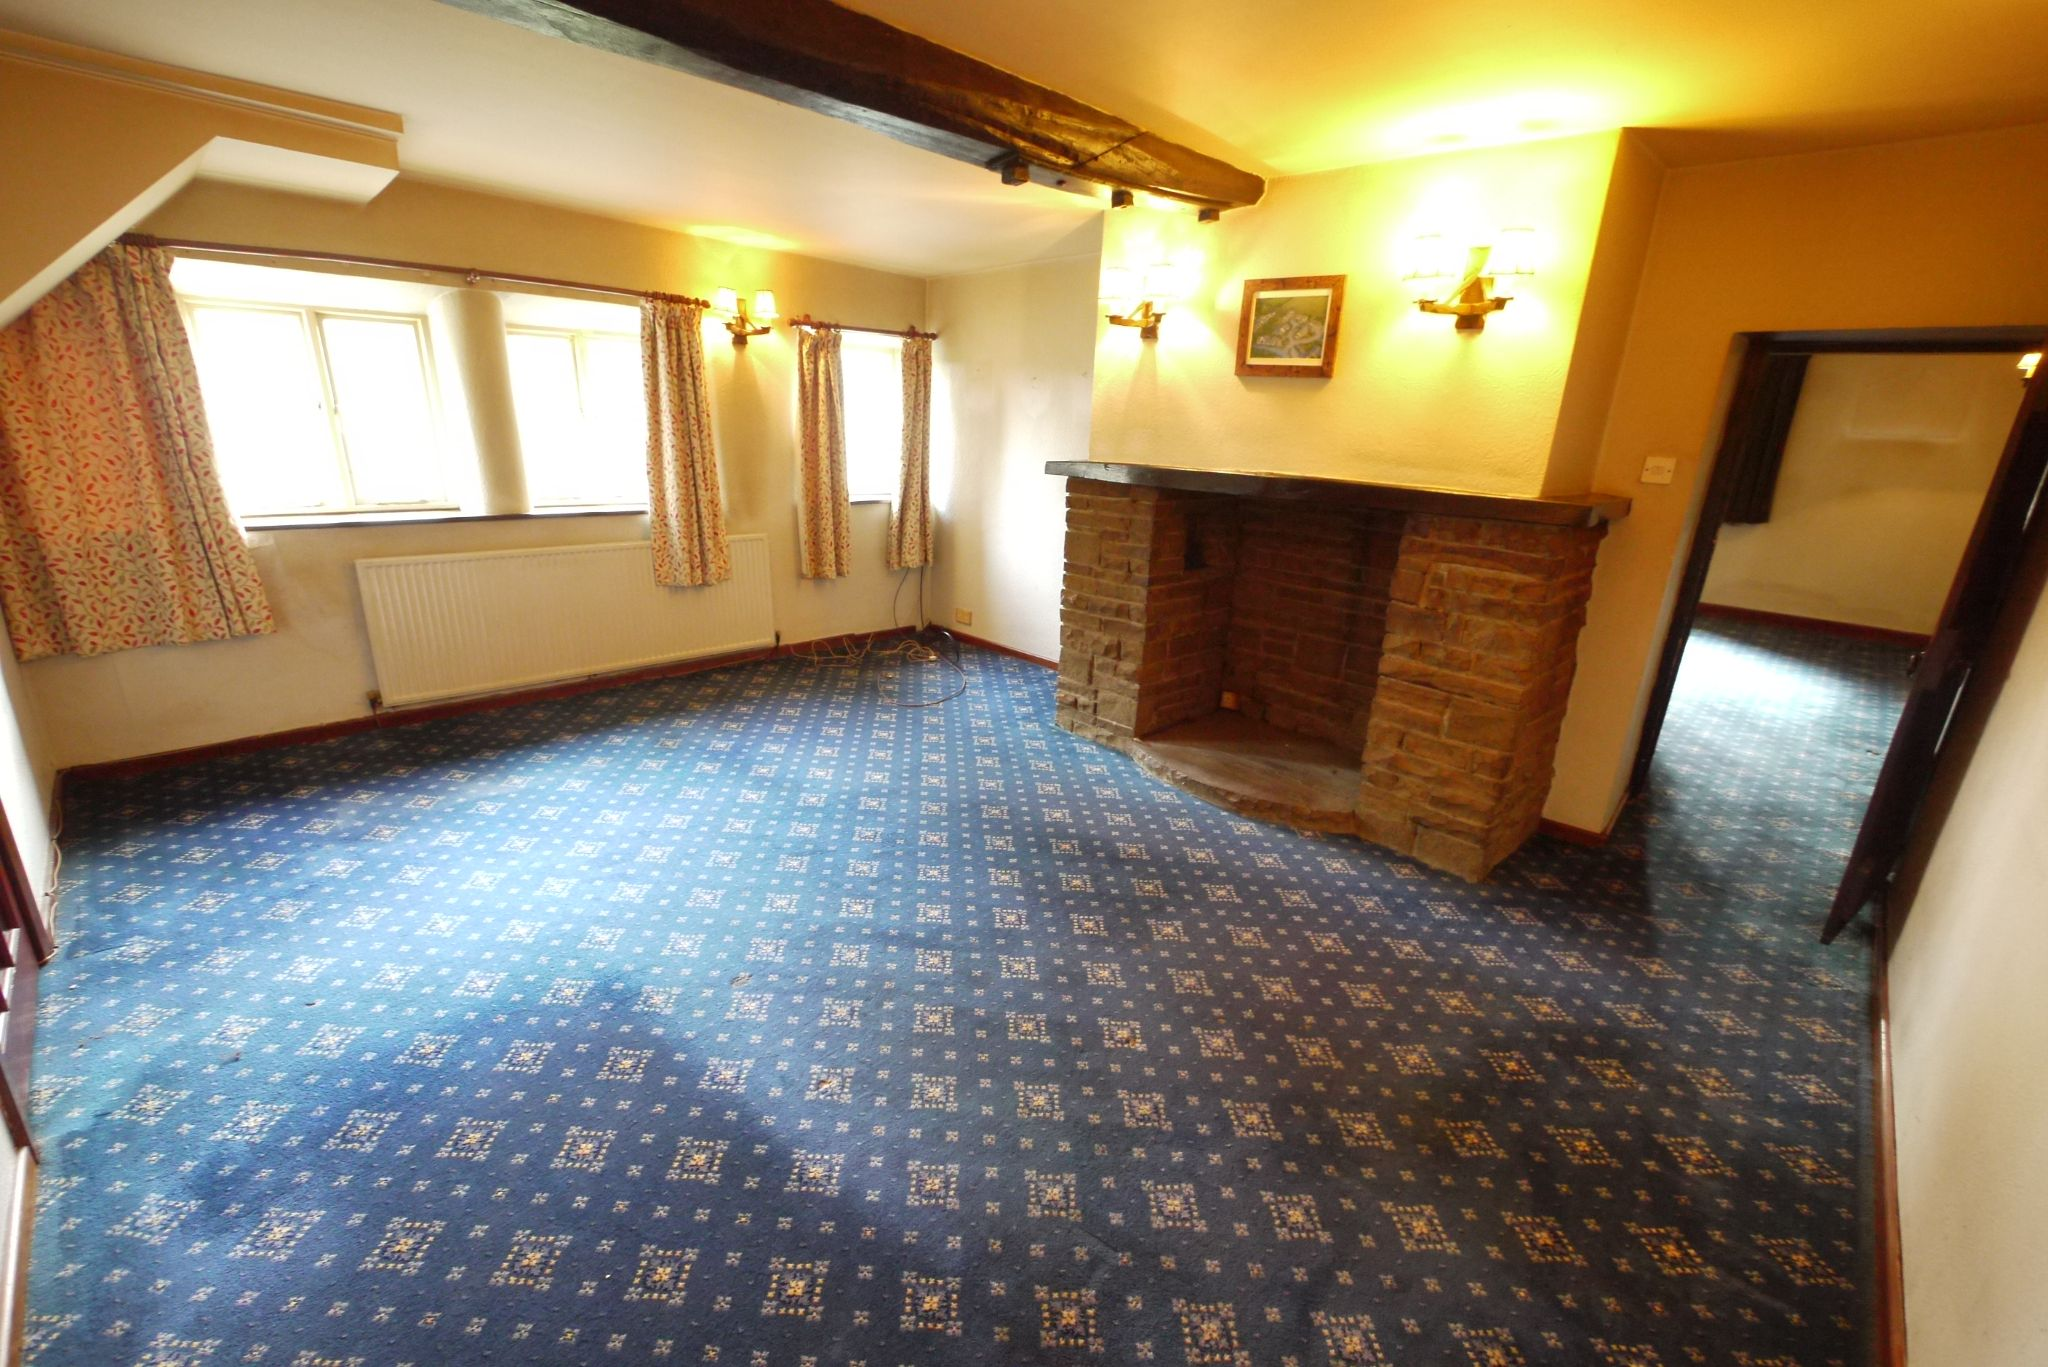 3 bedroom cottage house SSTC in Brighouse - Photograph 2.